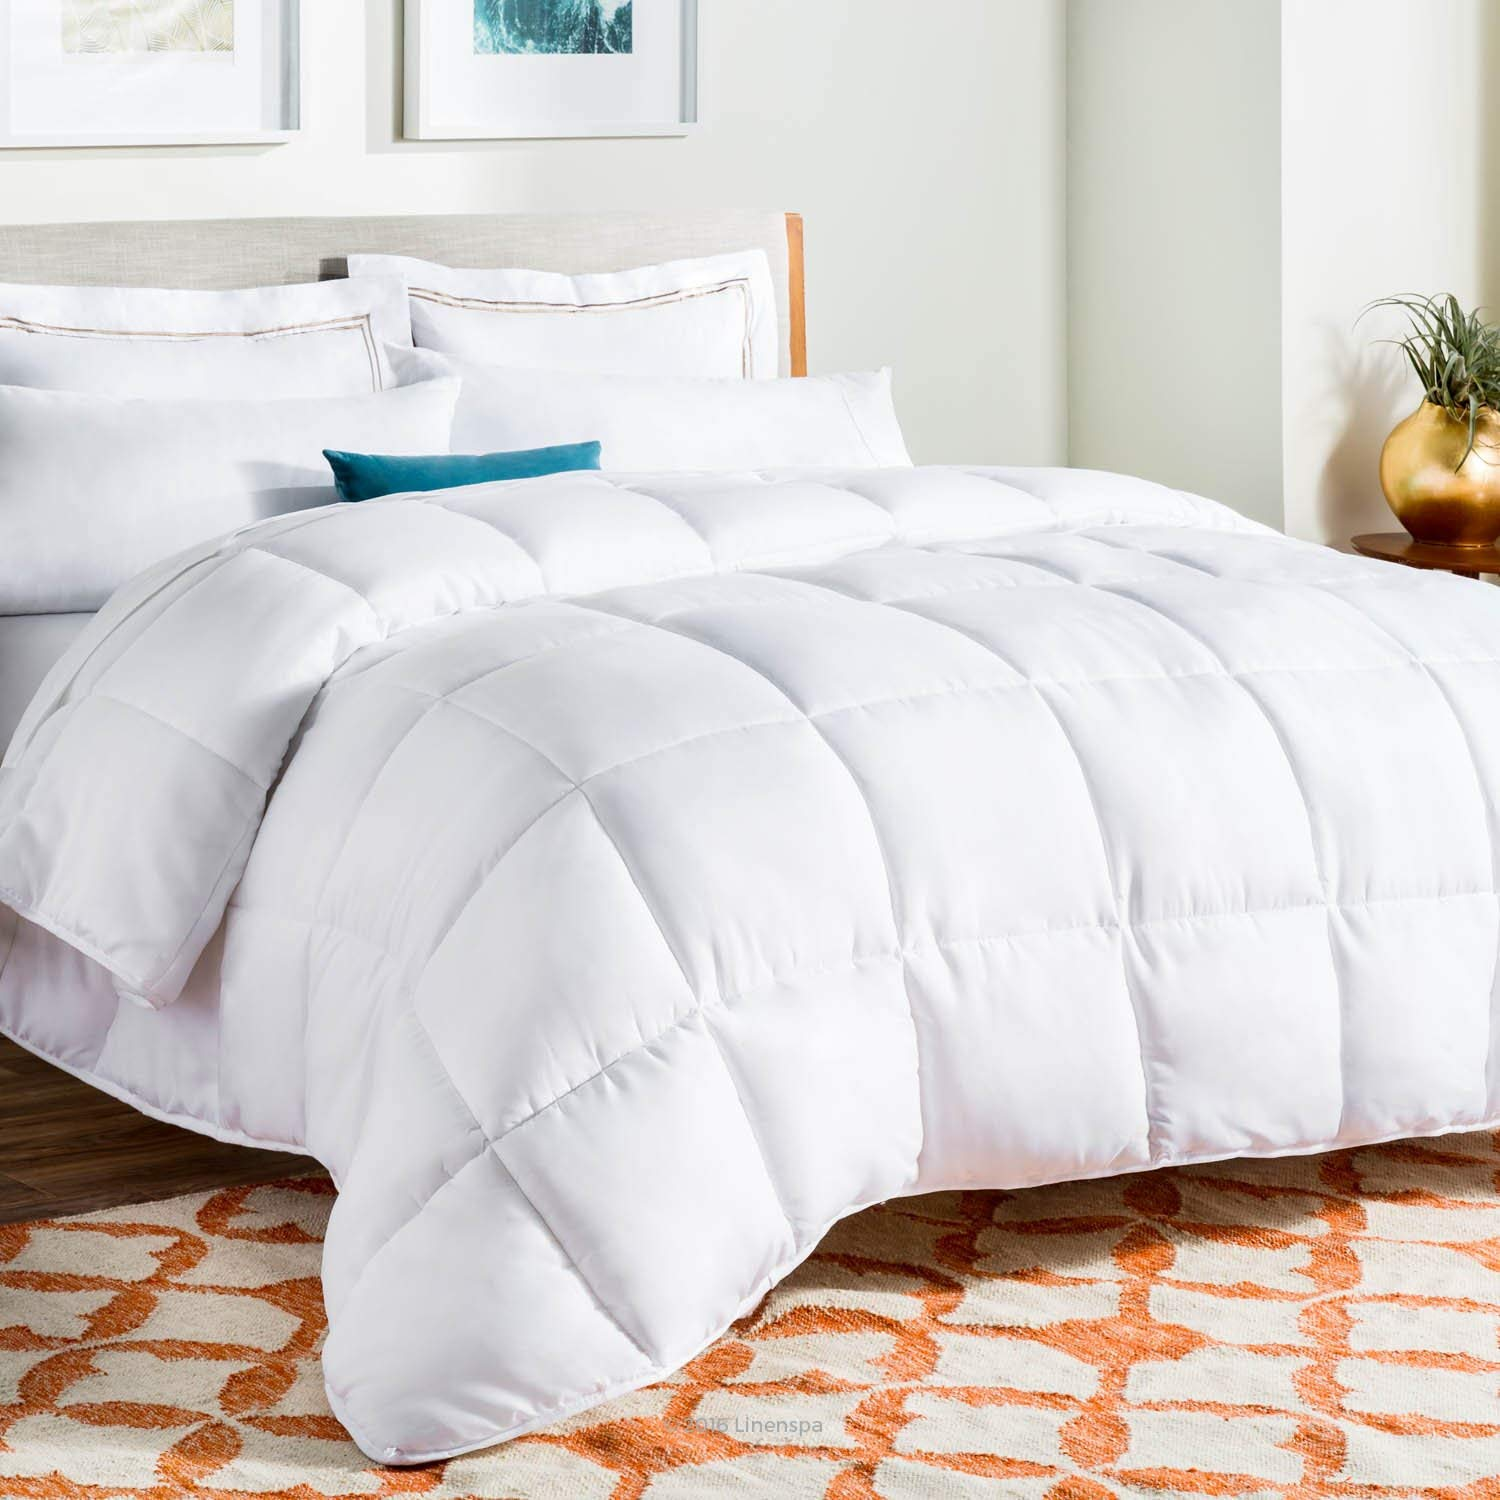 LINENSPA Best Comforter Review by www.snoremagazine.com